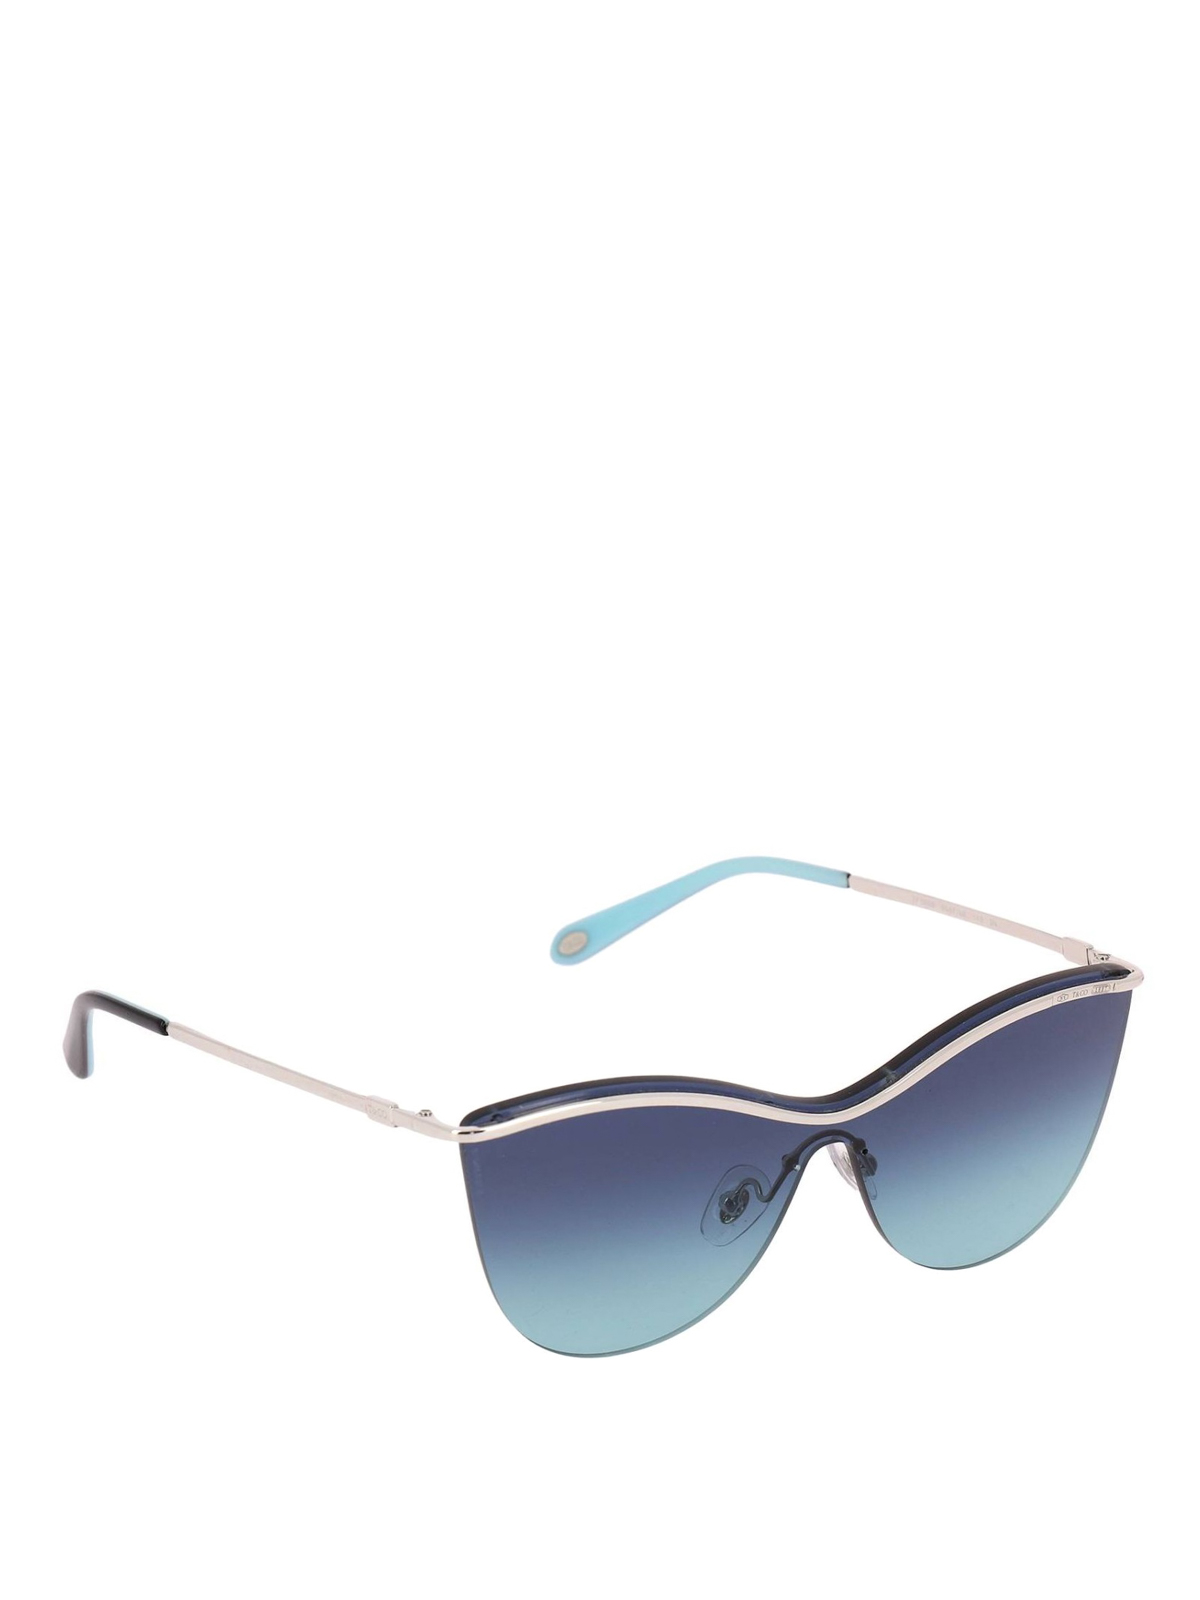 c6c3ab475987 Tiffany   Co. - Silver and blue butterfly sunglasses - sunglasses ...